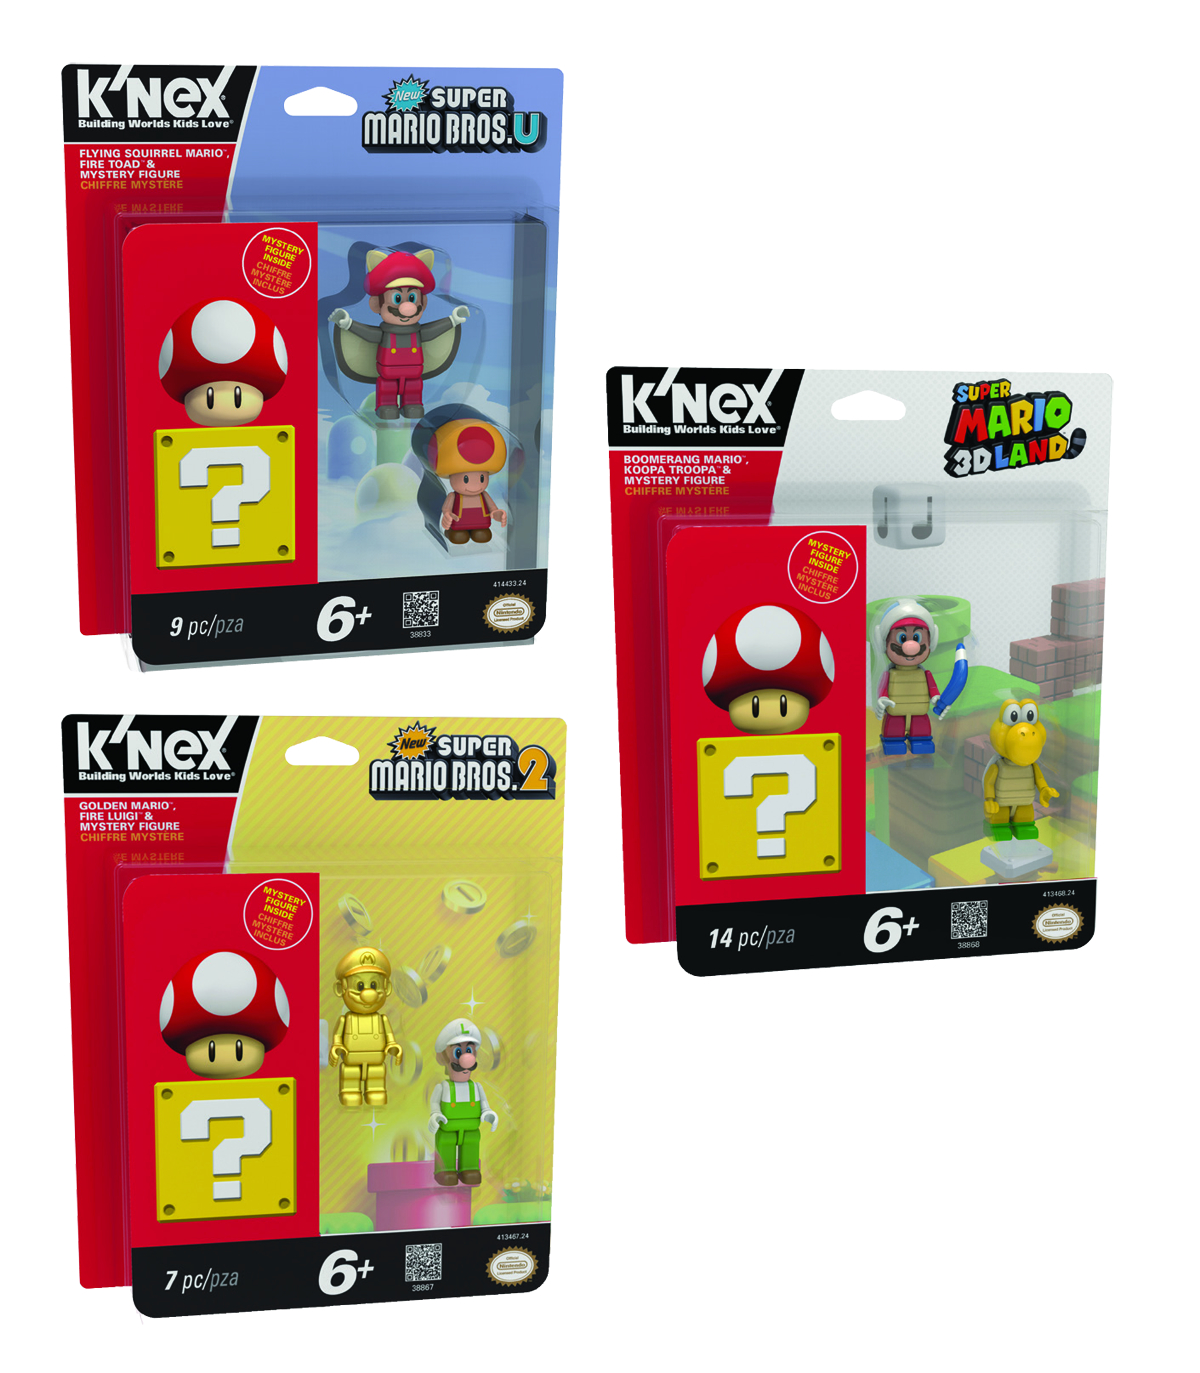 KNEX SUPER MARIO 3-PACK SERIES 3 FIGURE ASST